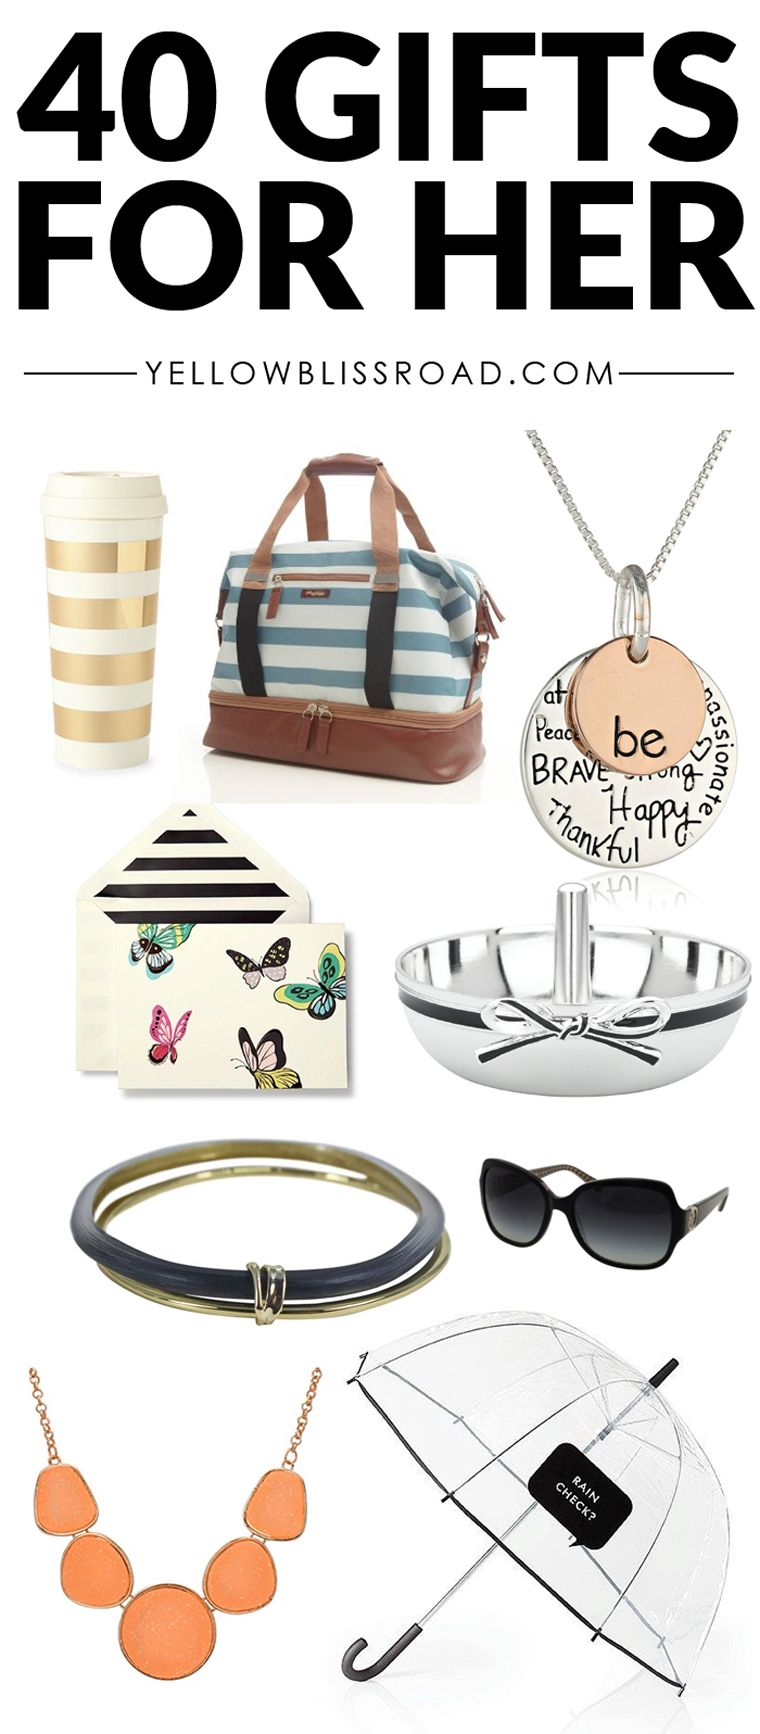 Christmas Gift Ideas for Her - For Any Budget! | Pinterest Best ...